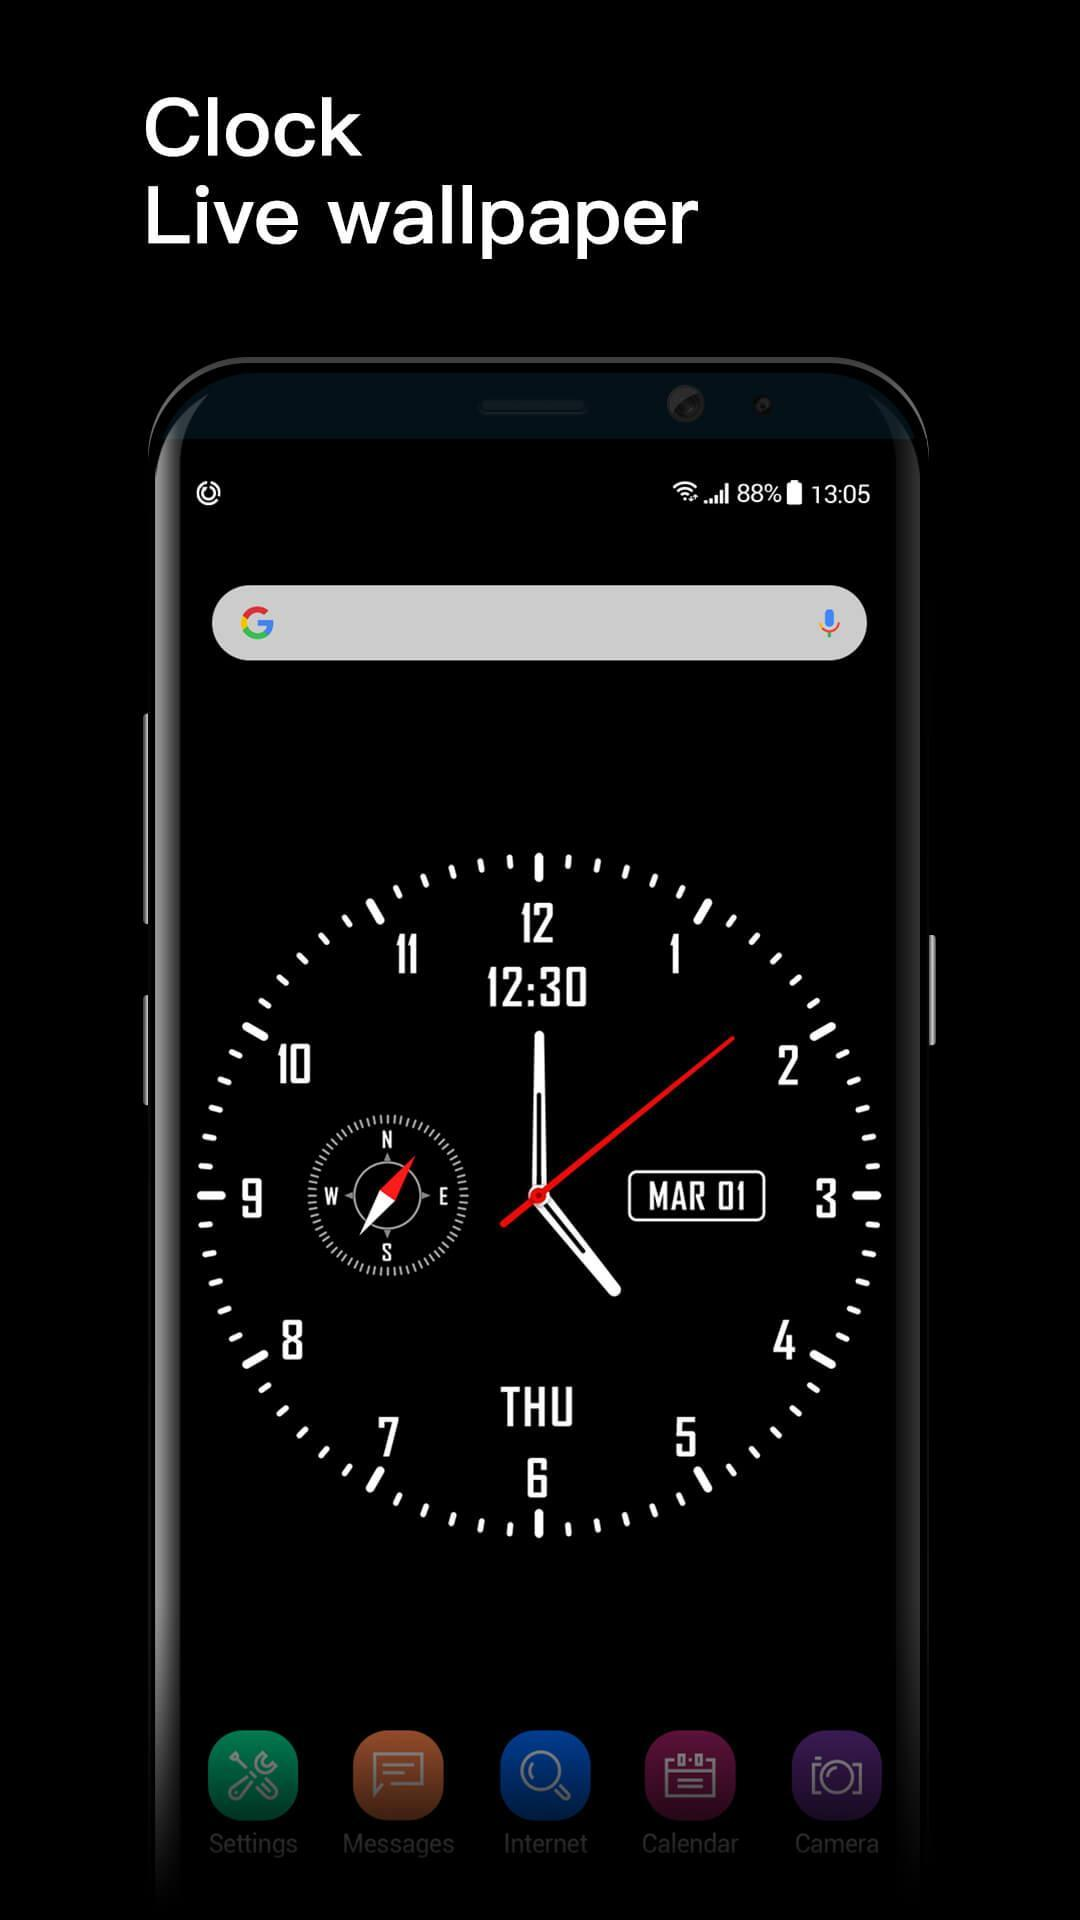 Analog clock & watch face live wallpaper for Android - APK